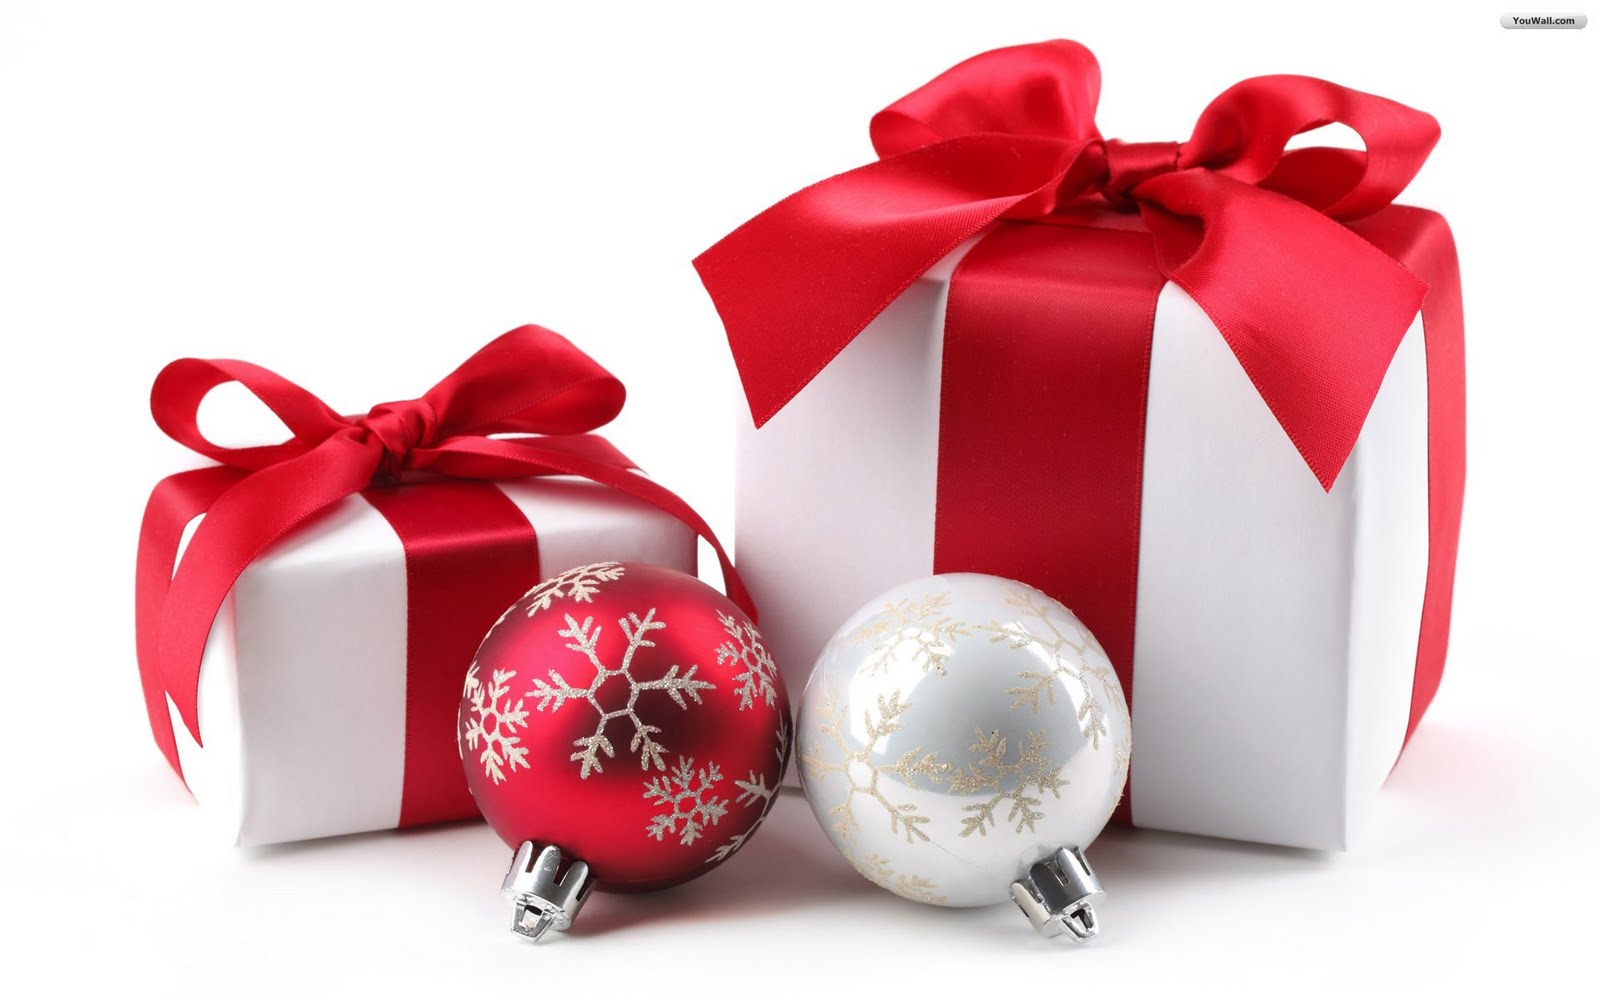 Wallpapers Background: Christmas Gifts Wallpapers